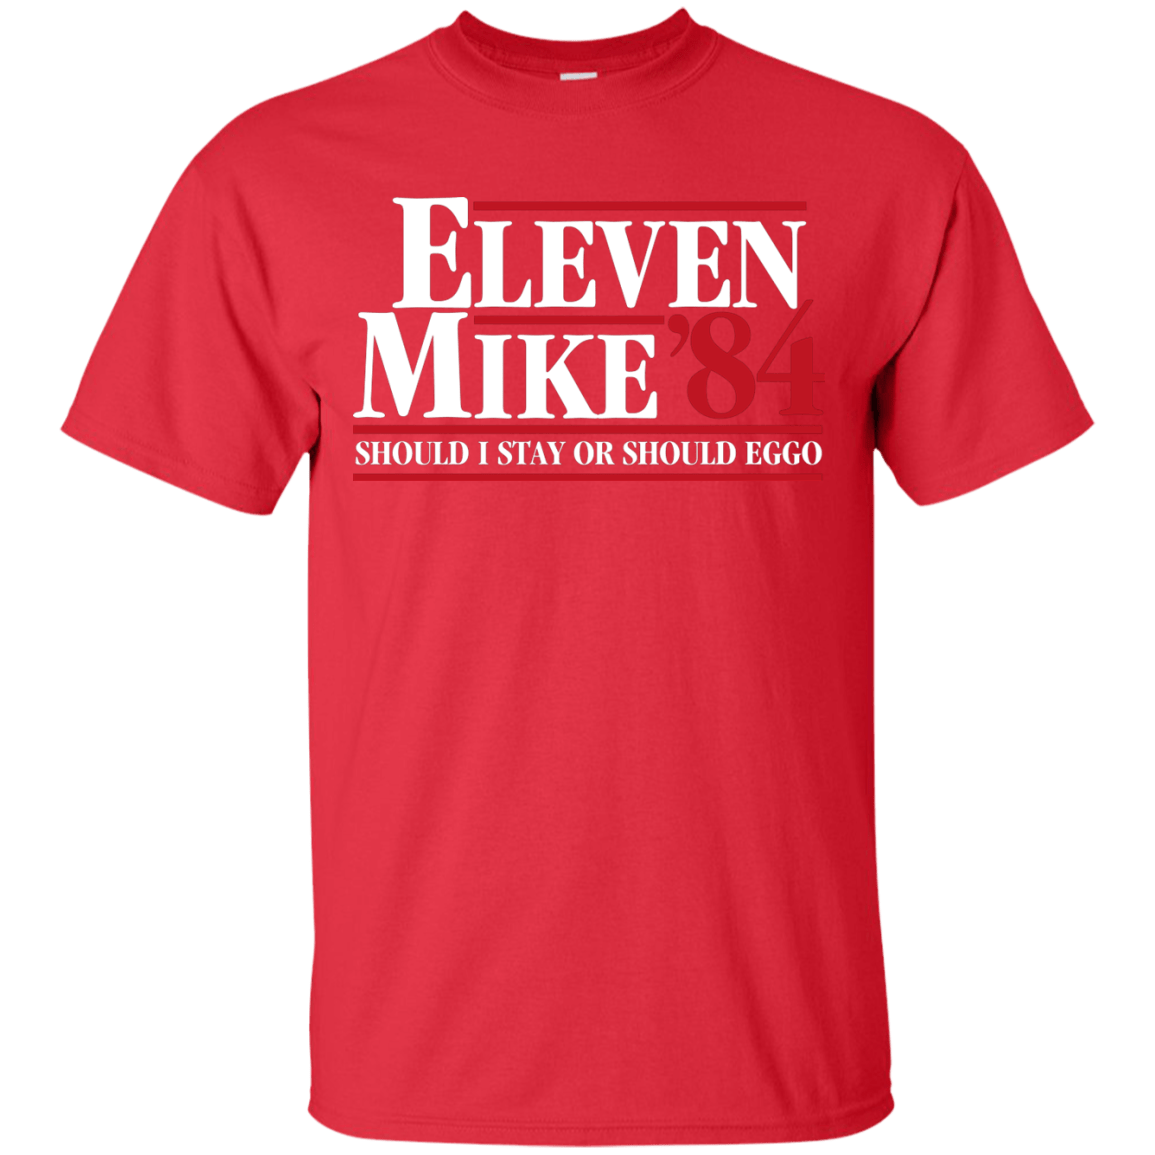 T-Shirts Red / Small Eleven Mike 84 - Should I Stay or Should Eggo T-Shirt